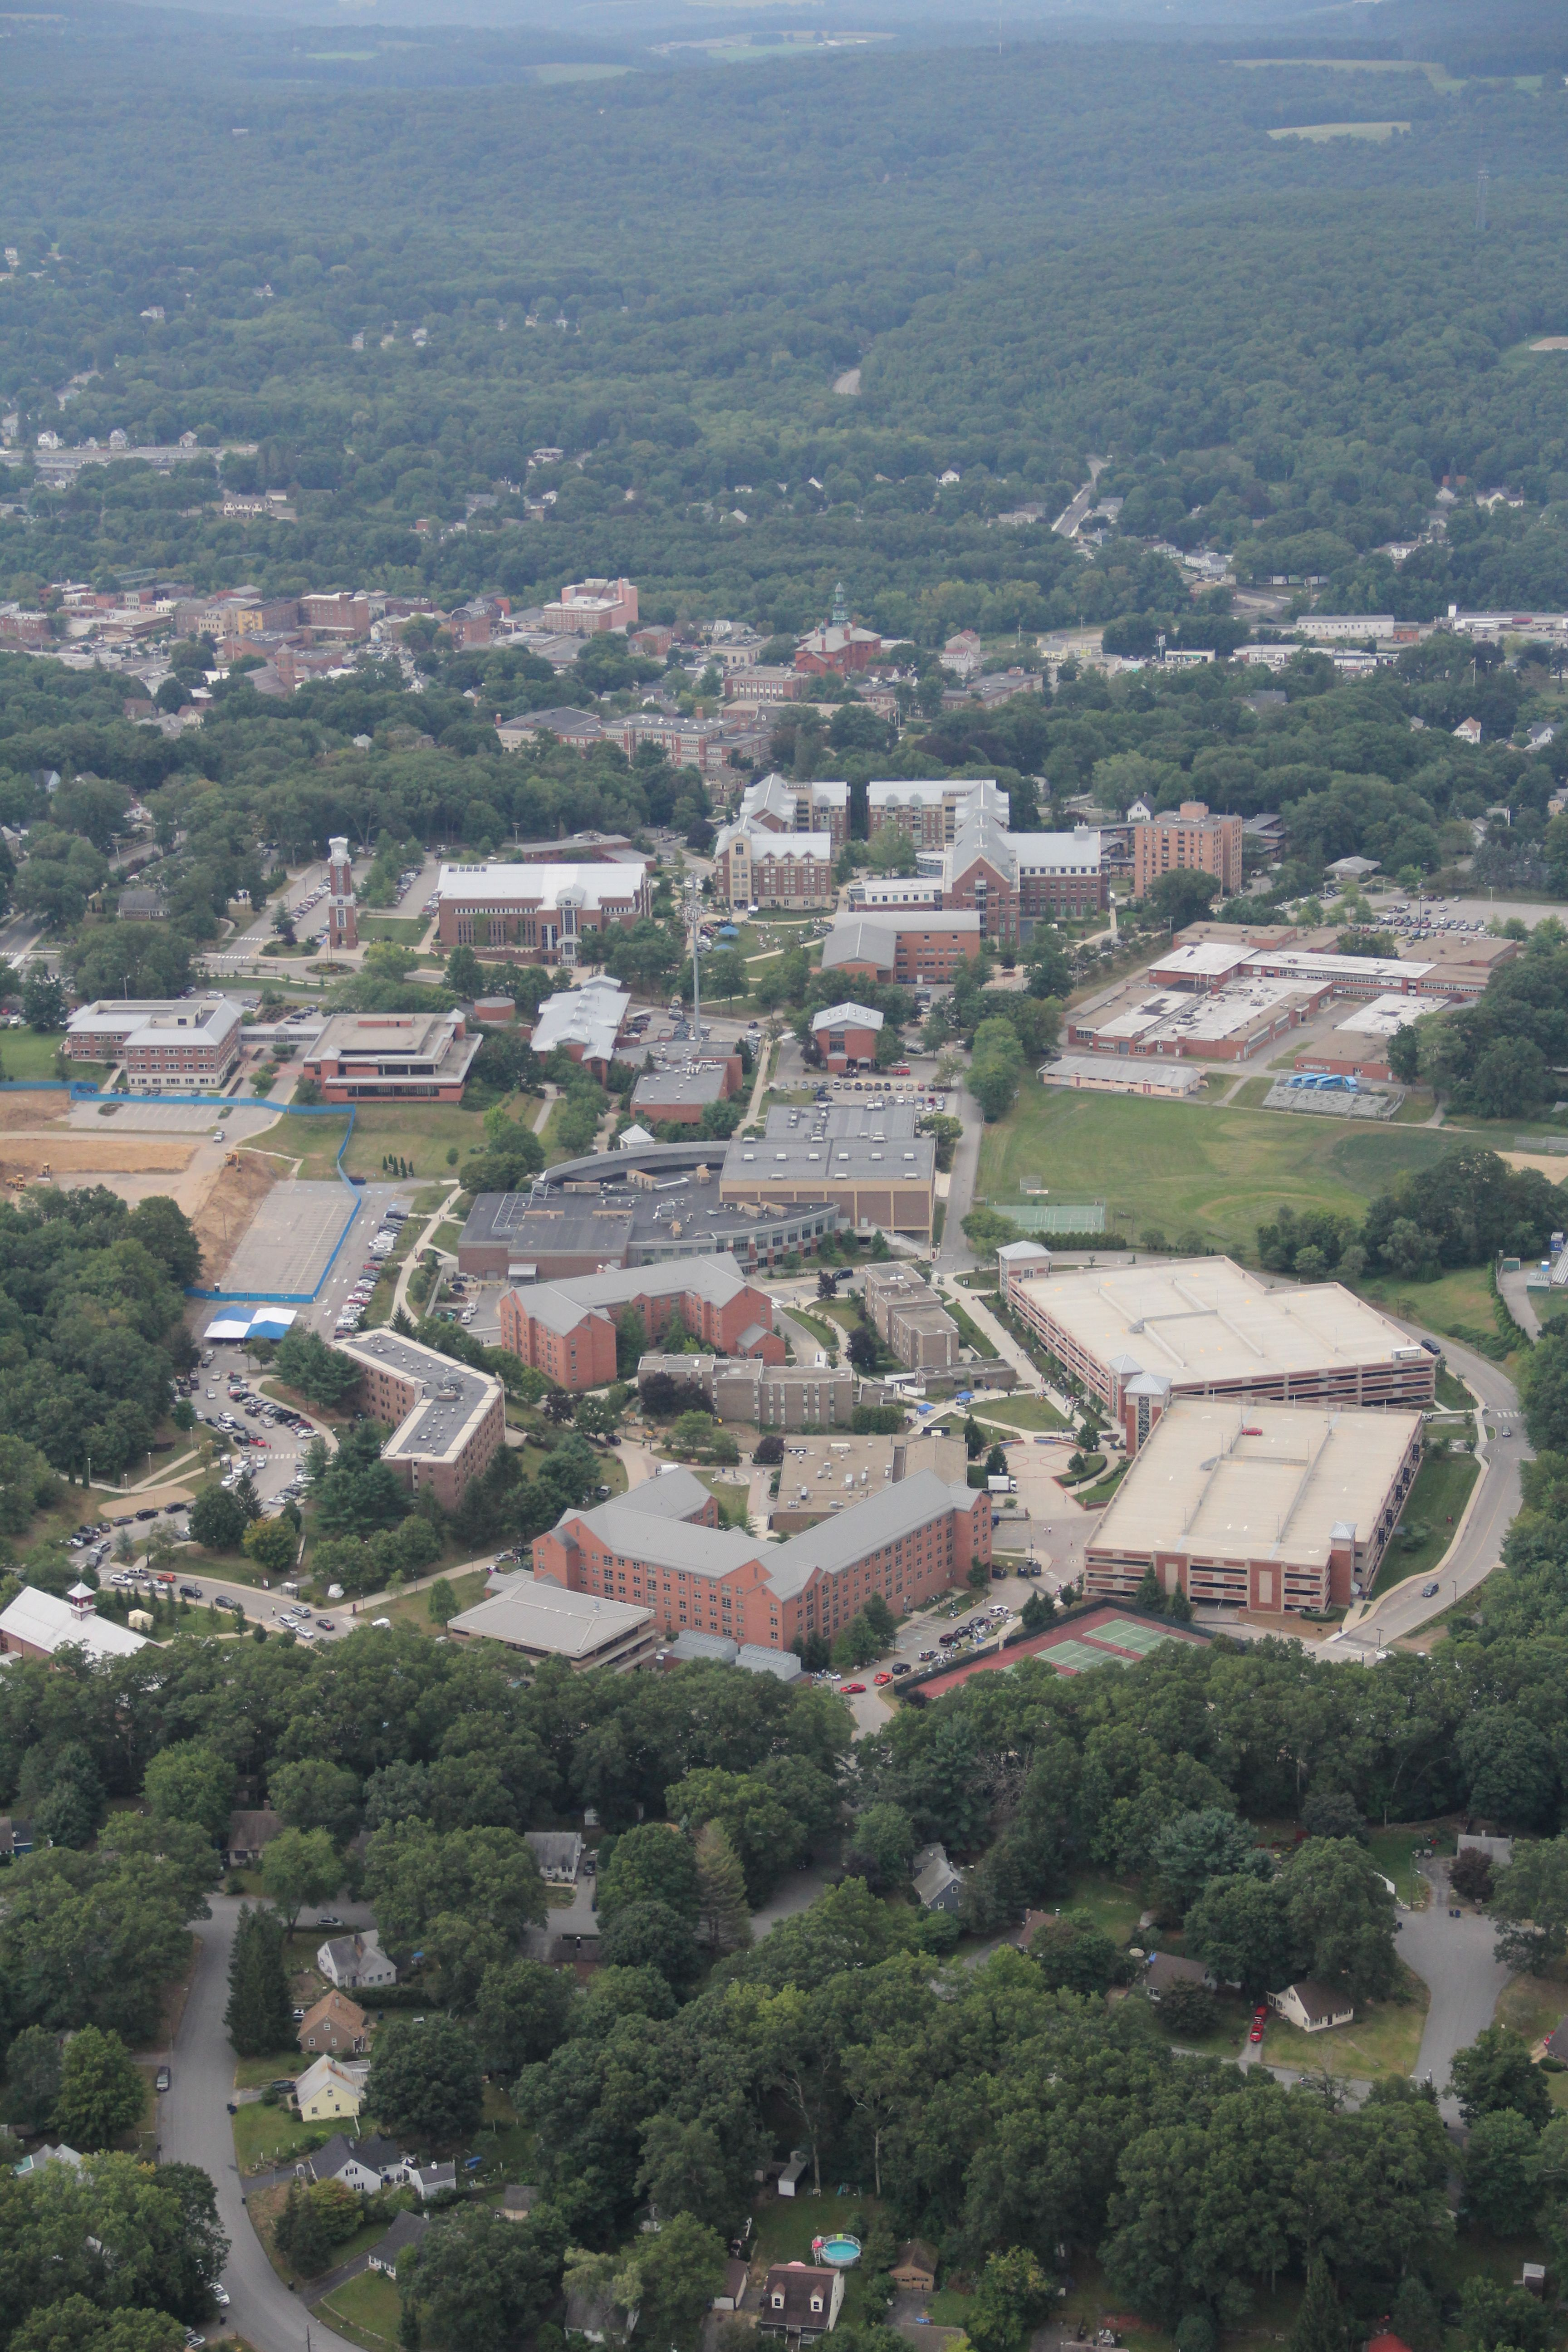 eastern connecticut state university map Aerial View Of Eastern Connecticut State University Aerial View eastern connecticut state university map